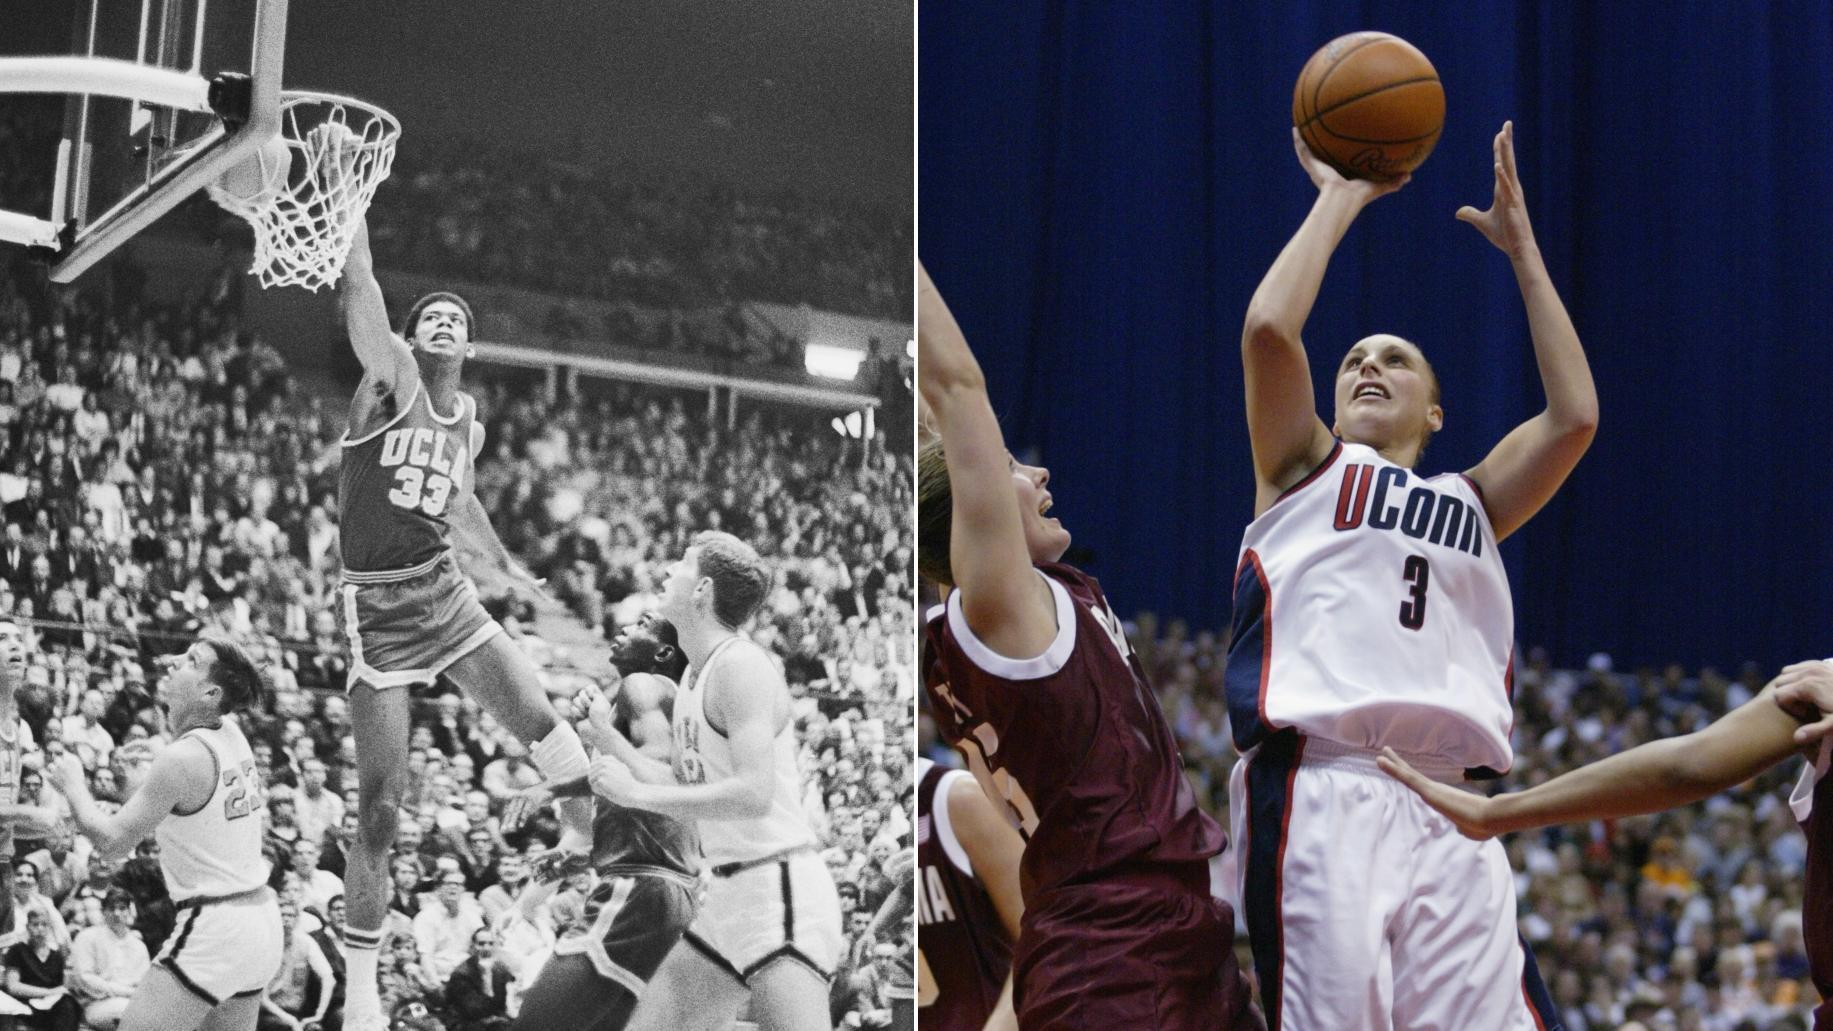 Lew Alcindor or Diana Taurasi? Who's the better college player?